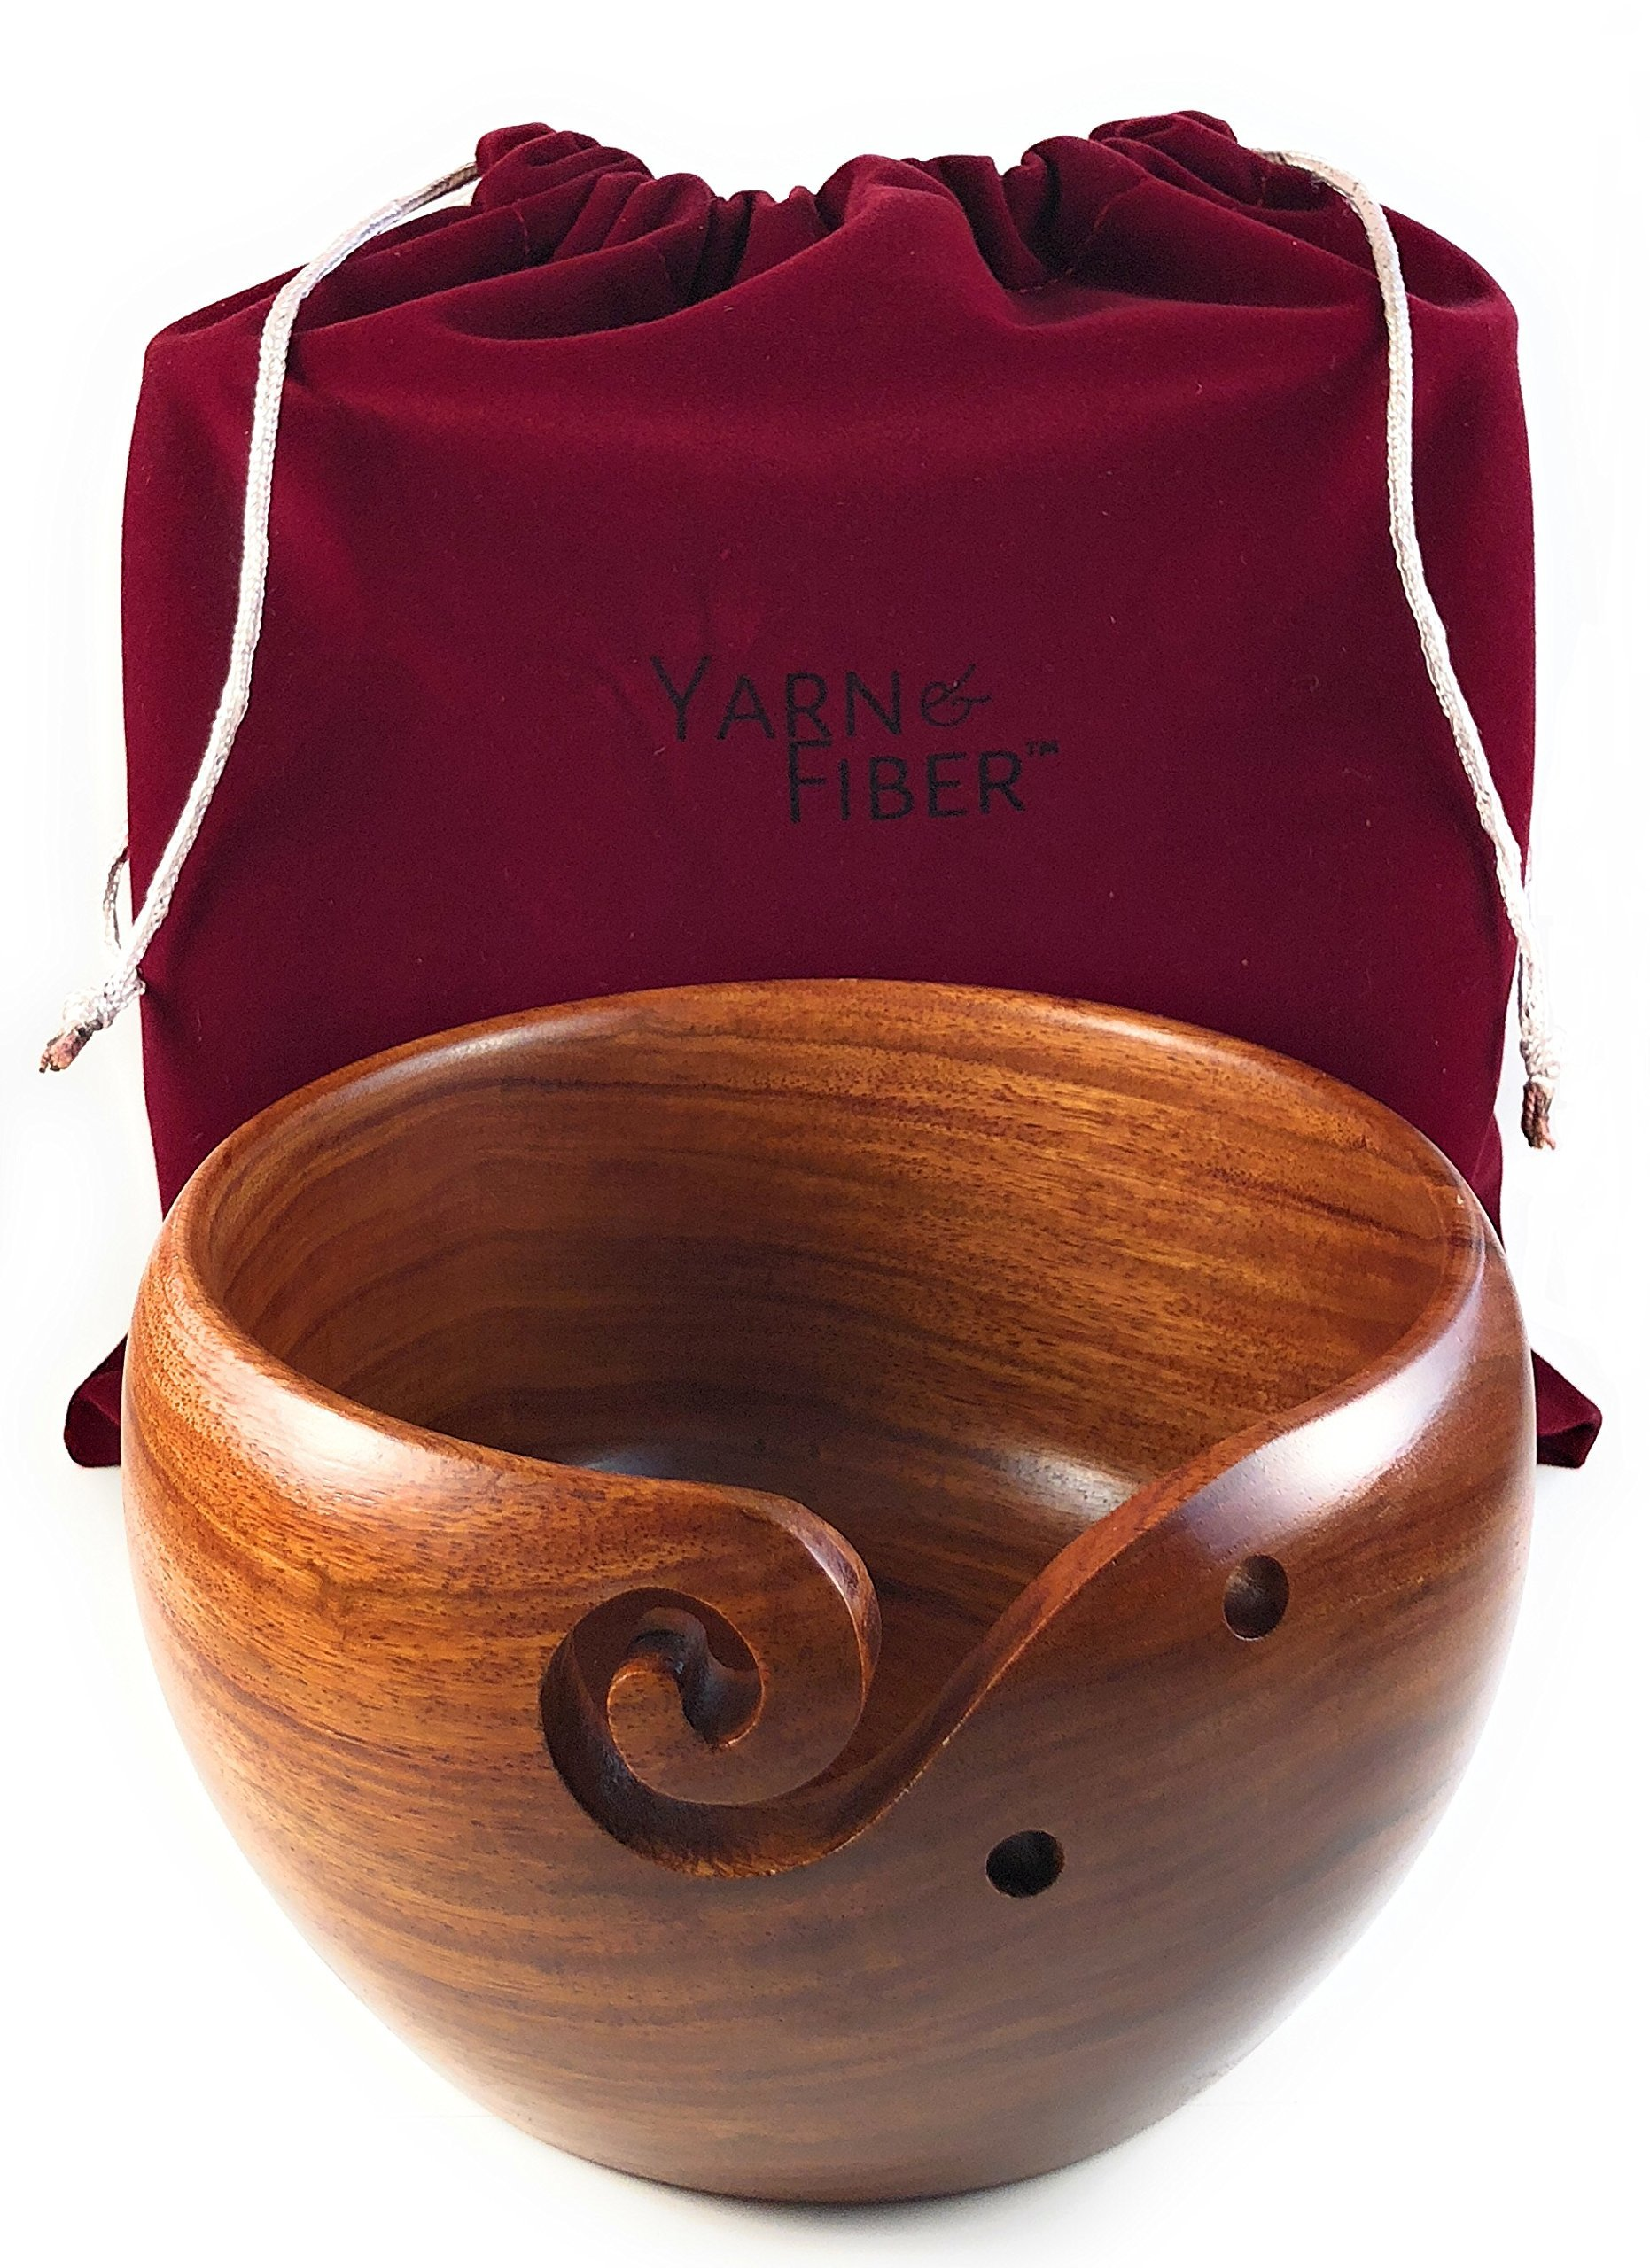 Yarn & Fiber Premium Yarn Bowl | Large 7x4 Inch with Travel Bag | Smooth Handcrafted Rosewood, Stop Yarn From Rolling, Knitting and Crochet Yarn Holder